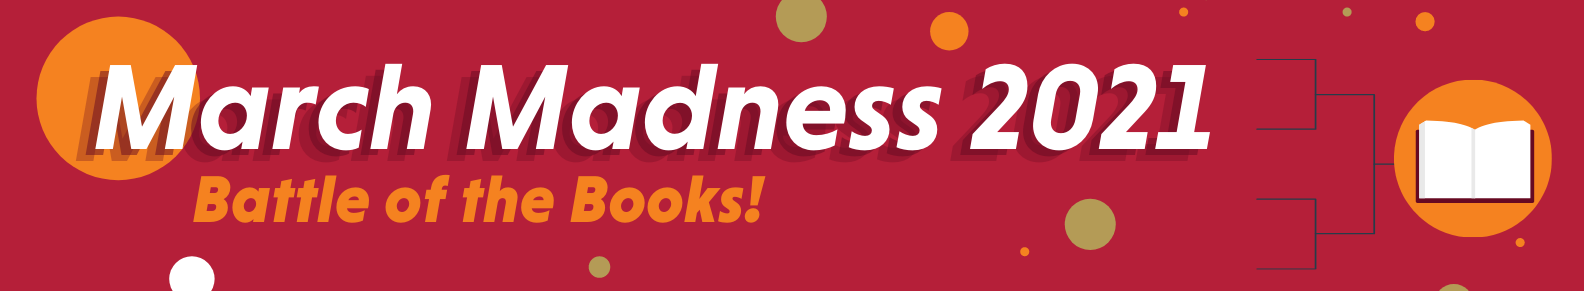 March Madness 2021: Battle of the Books